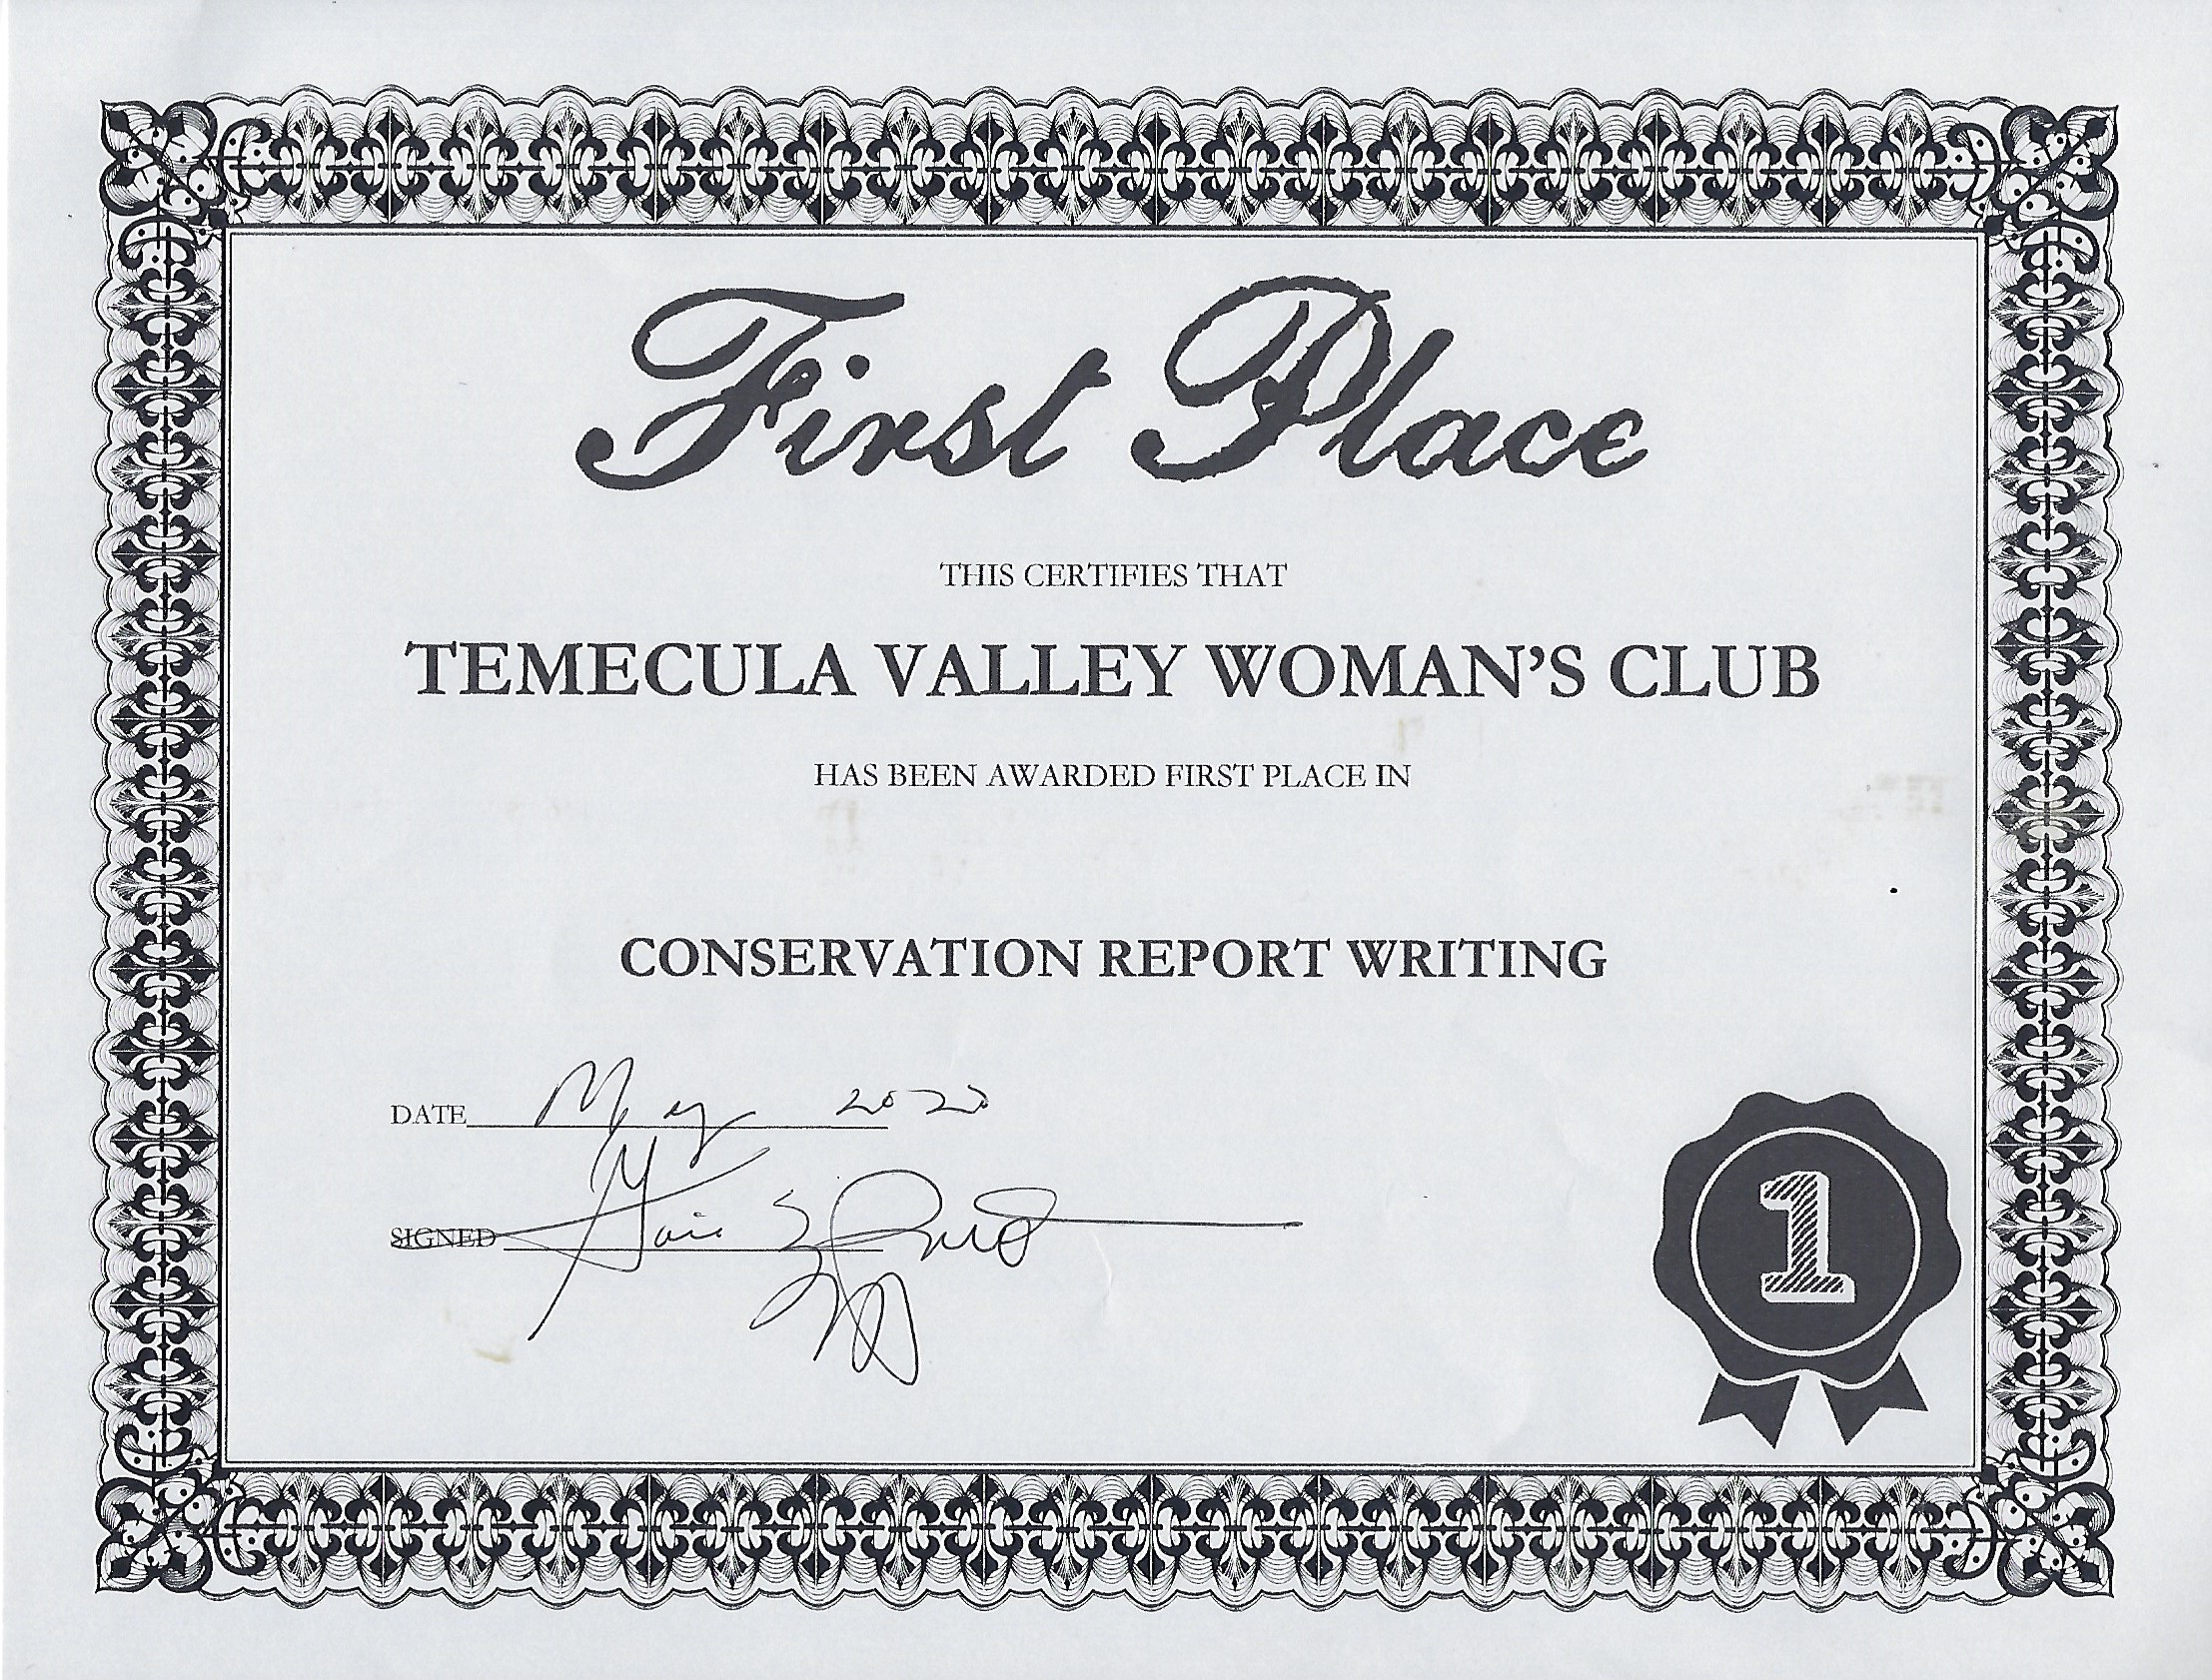 Conservation Report Writing Award 1st Place